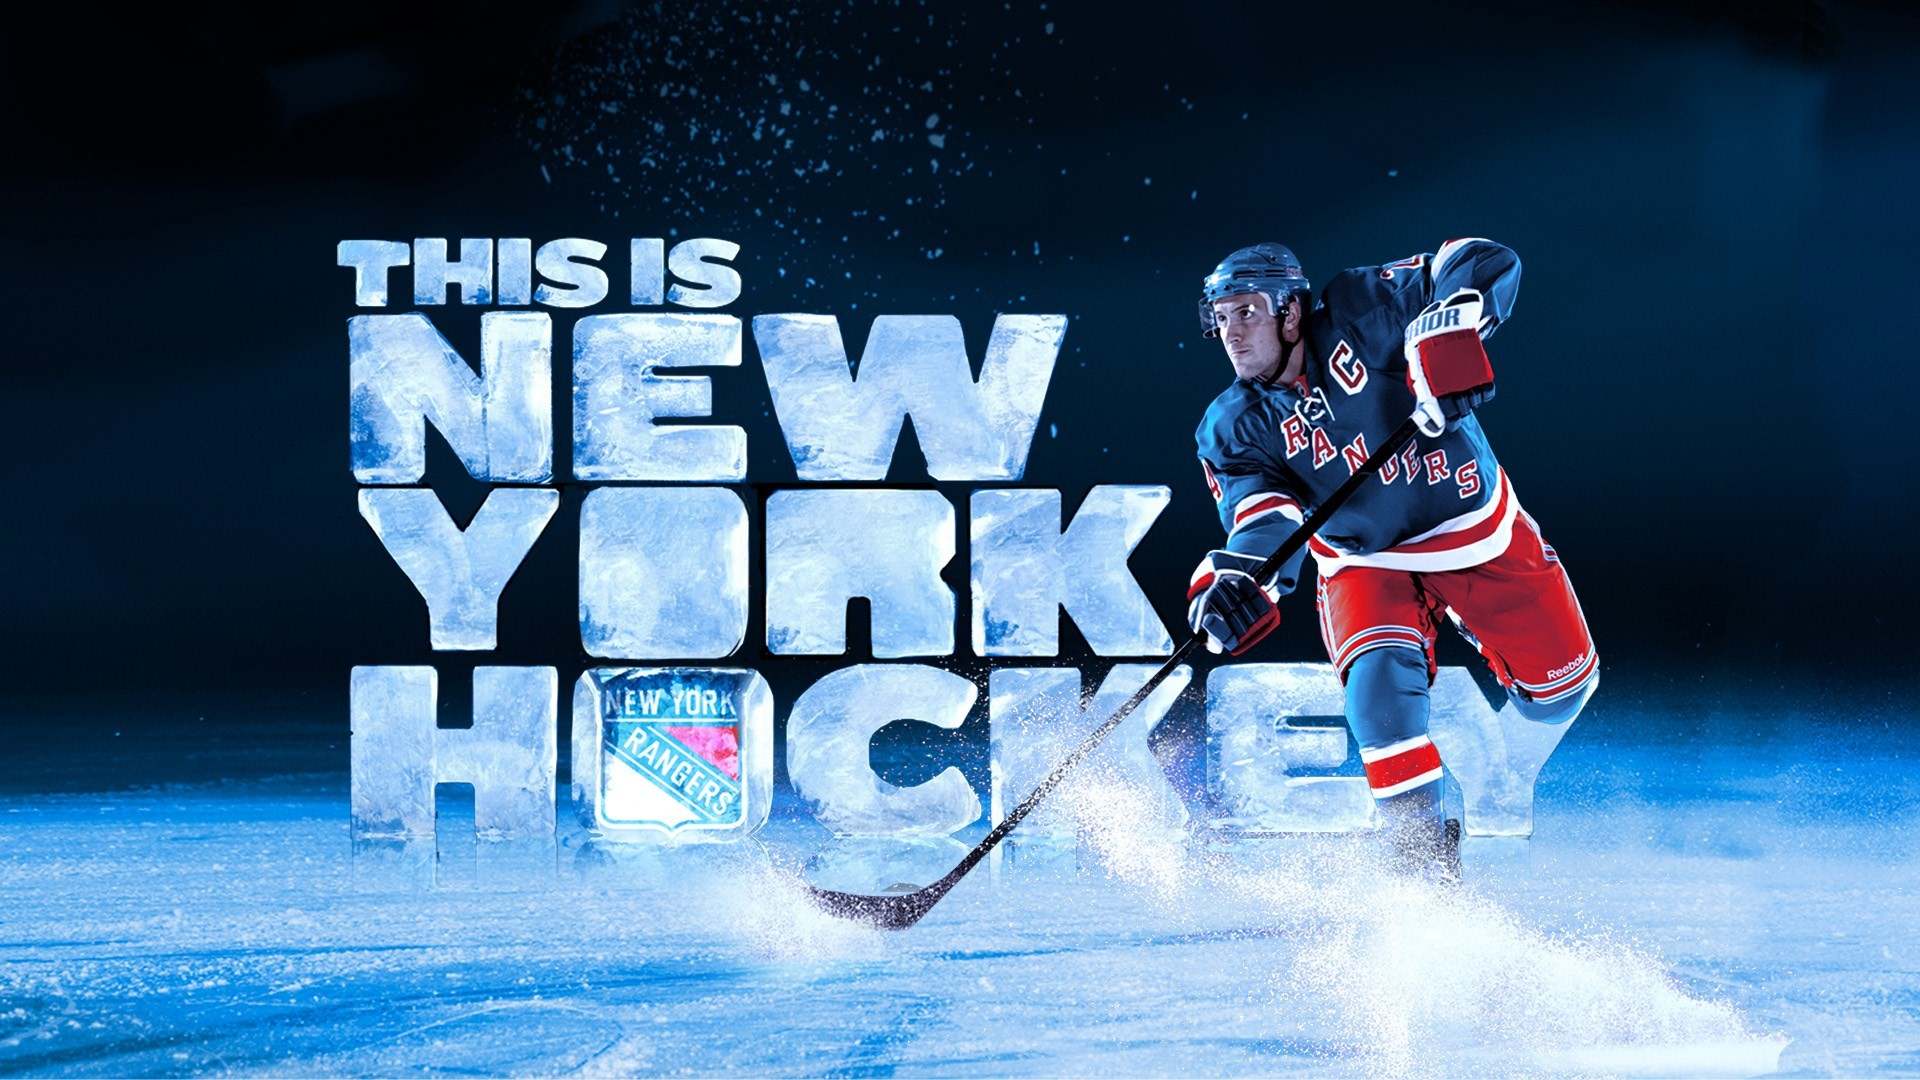 New York Rangers Sports iPhone Wallpapers, iPhone /G New York Rangers  Wallpaper Wallpapers)